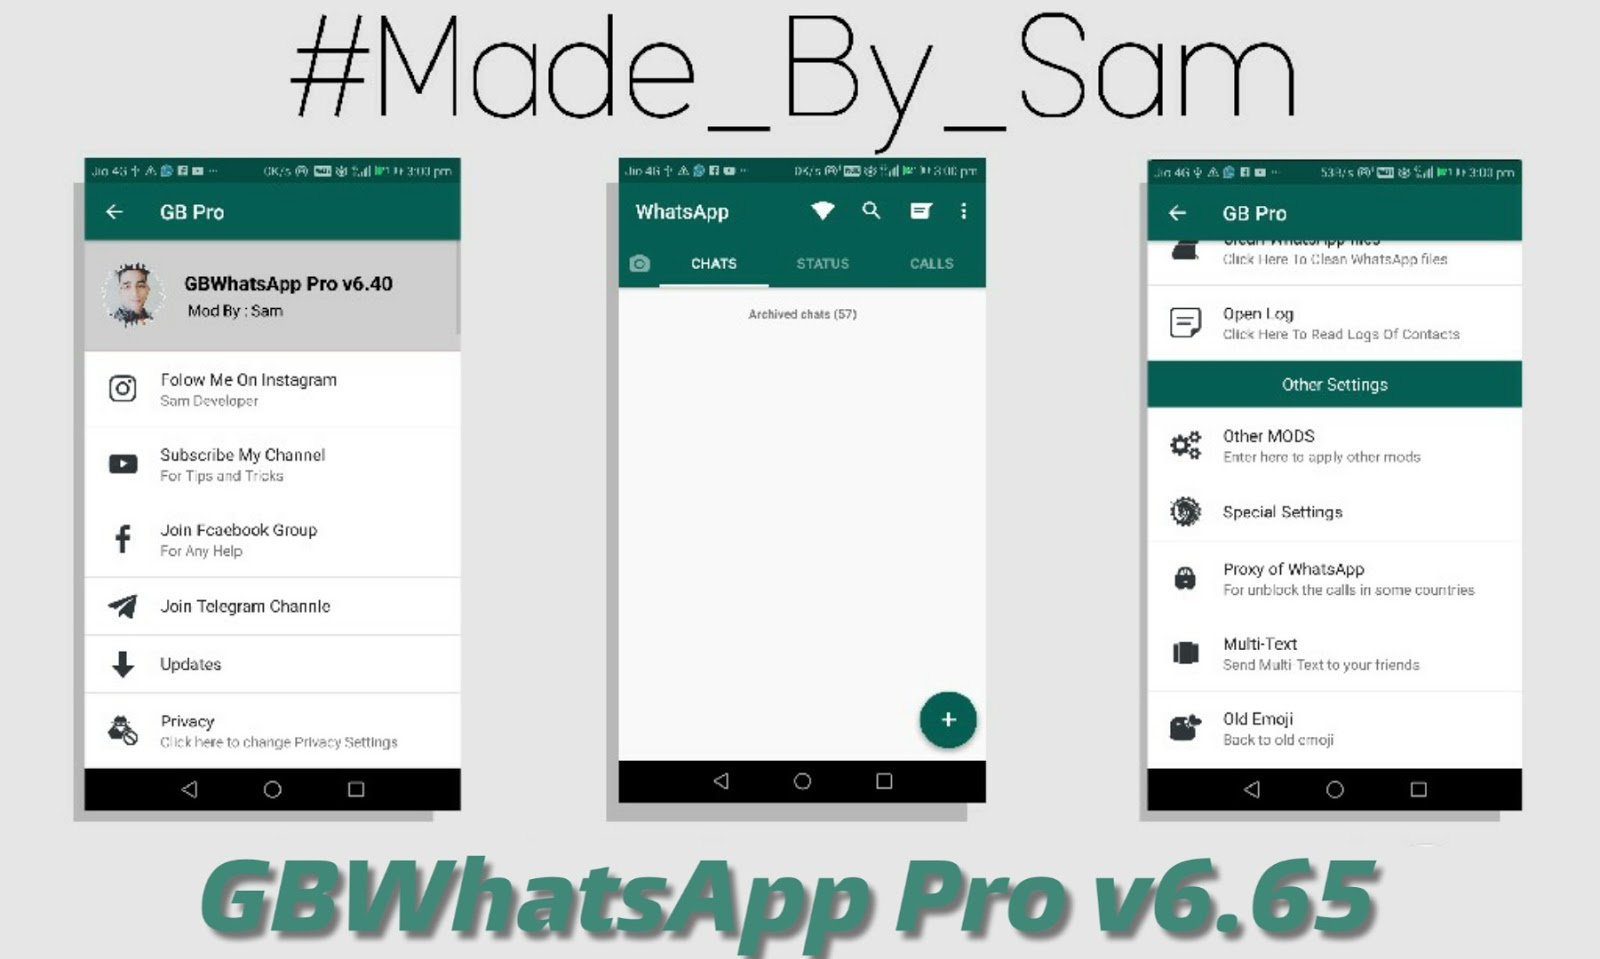 GBWhatsApp Pro 20.20 Fixed Latest Version Download Now By Sam